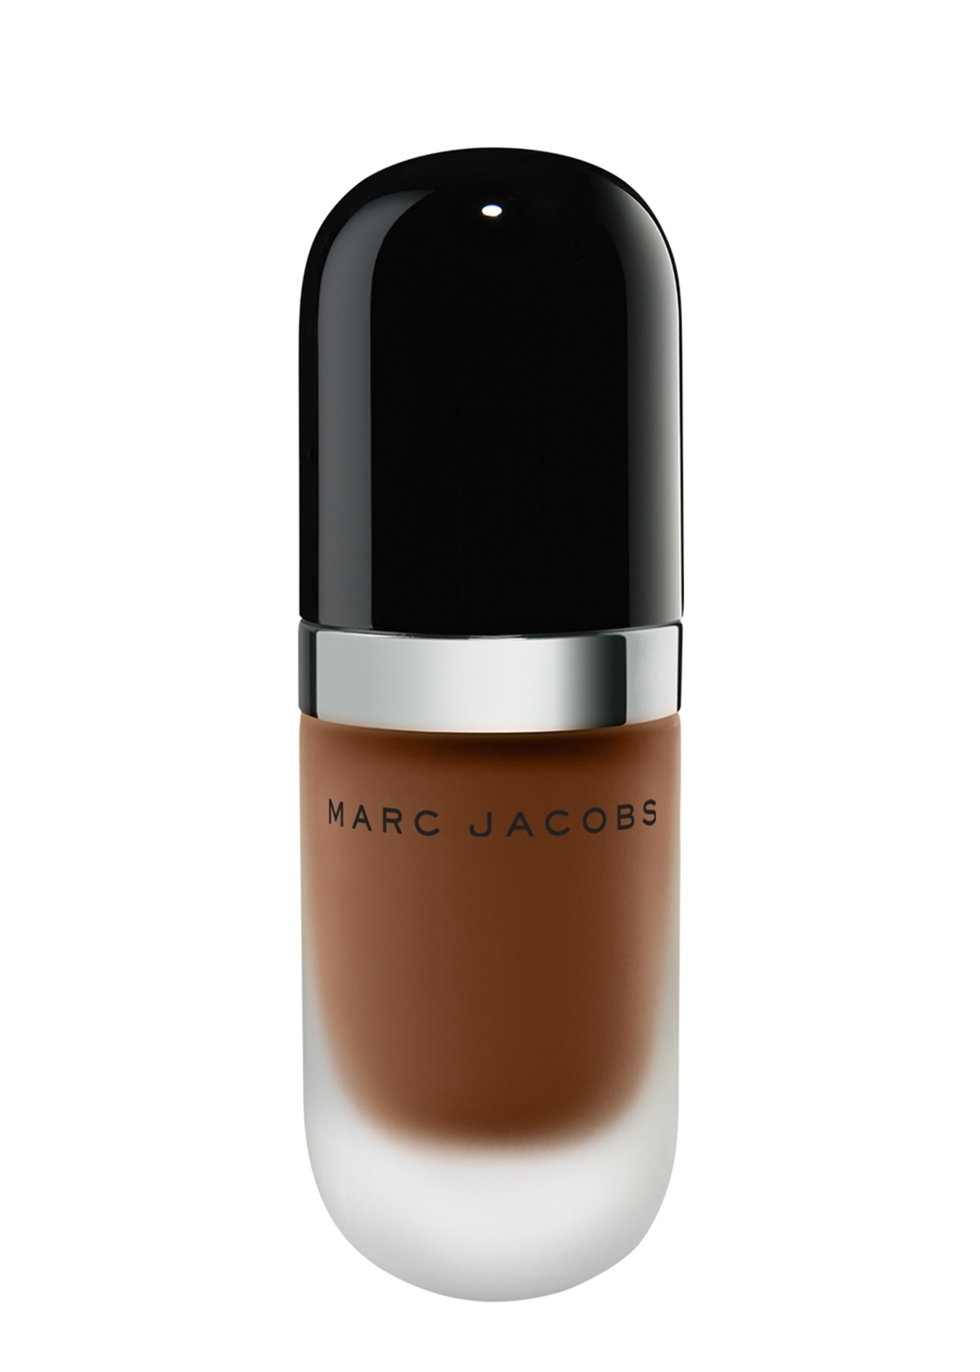 Re(marc)able Full Cover Foundation Concentrate - MARC JACOBS BEAUTY